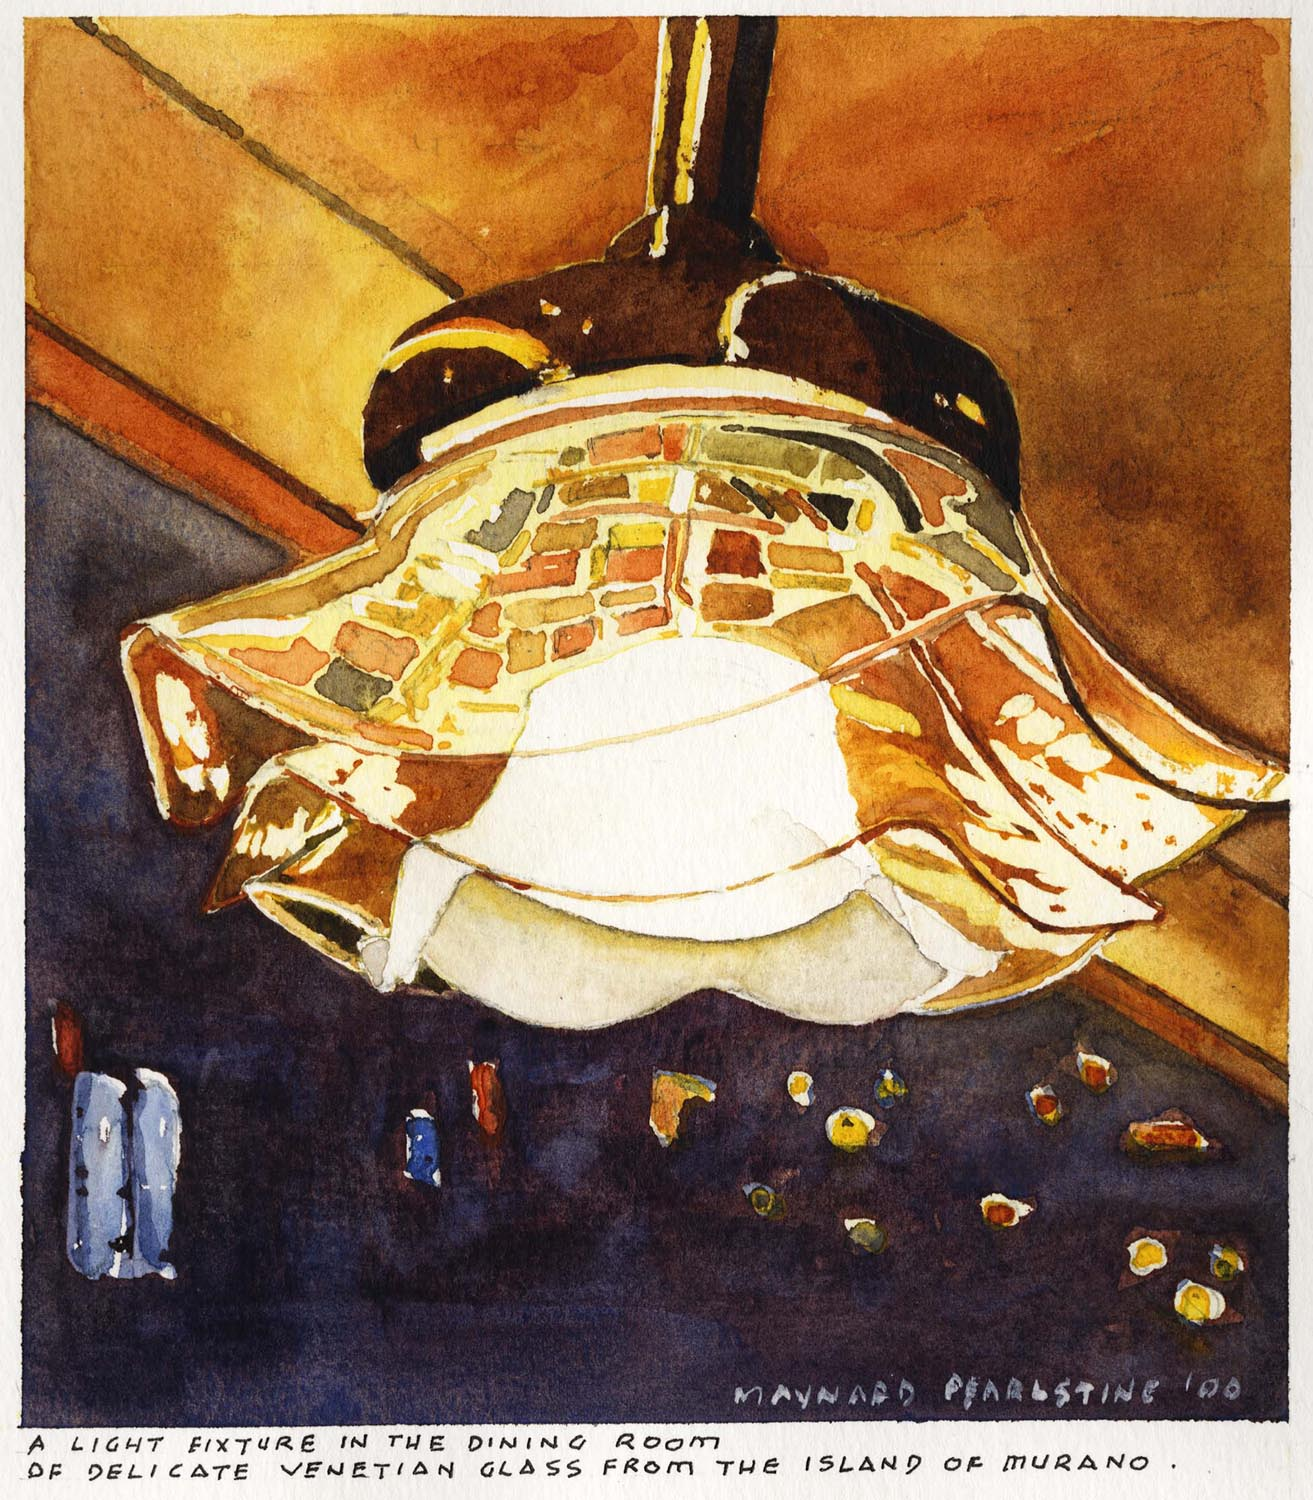 A Light Fixture in the Dining Room